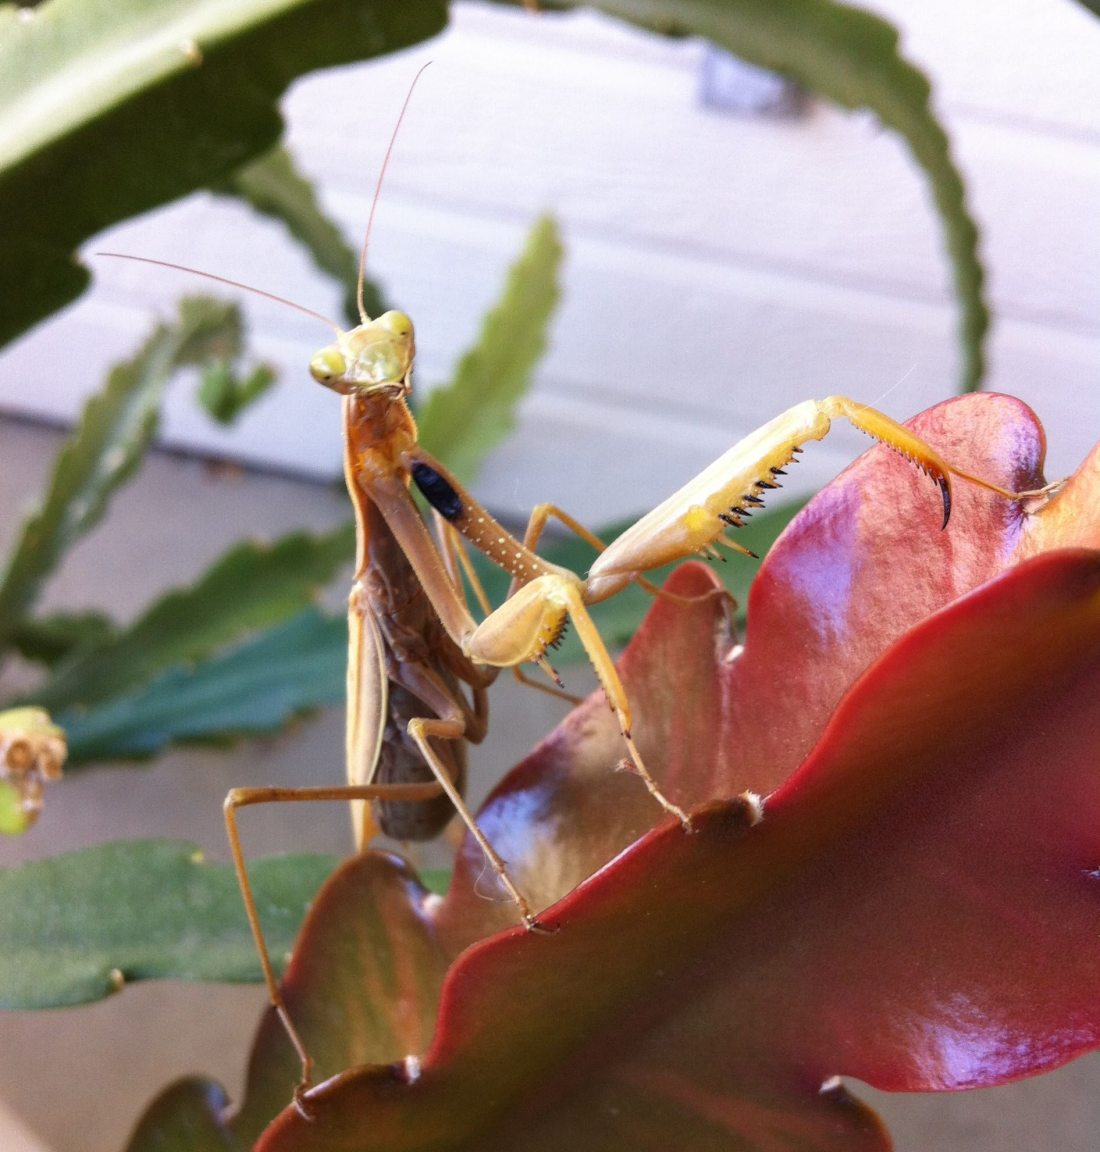 Praying mantis who died on 11/18/2015.